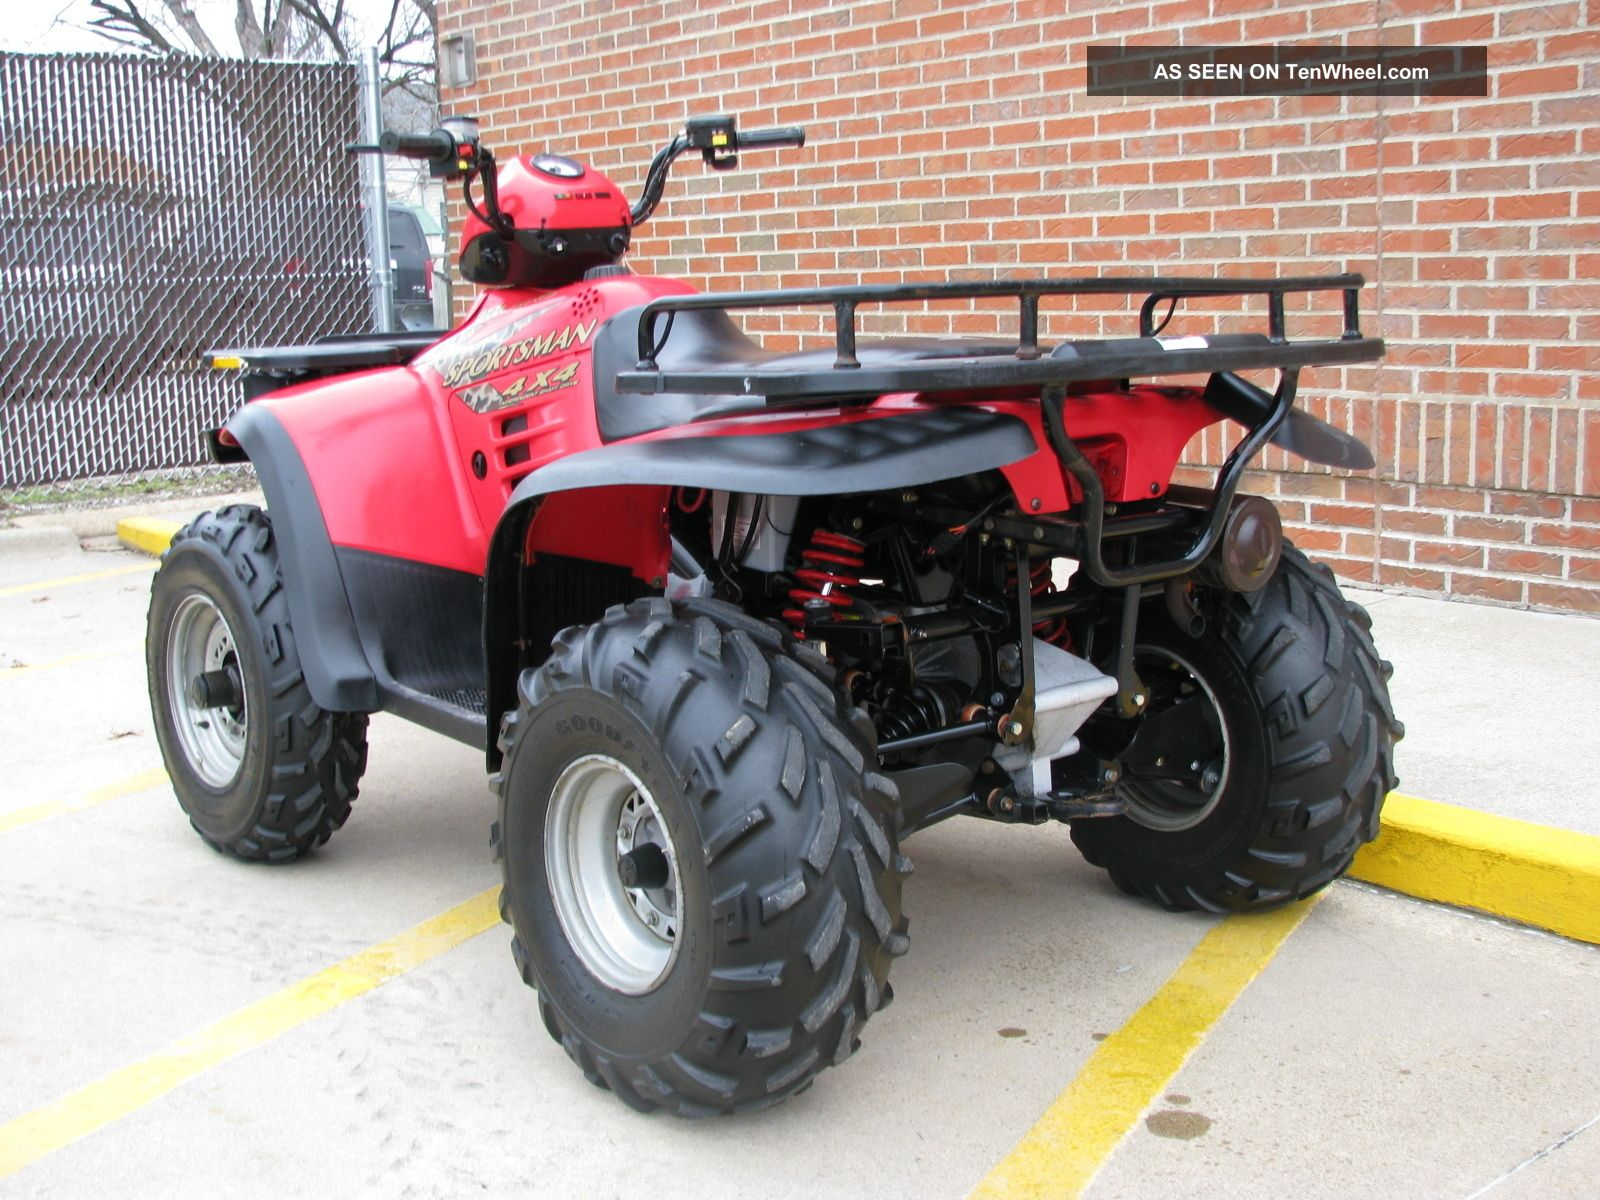 Honda Recon Lgw as well  moreover Polaris Sportsman Lgw likewise Ski Doo Mxz Lgw also Honda Recon Lgw. on 1999 kawasaki mule 2510 specs